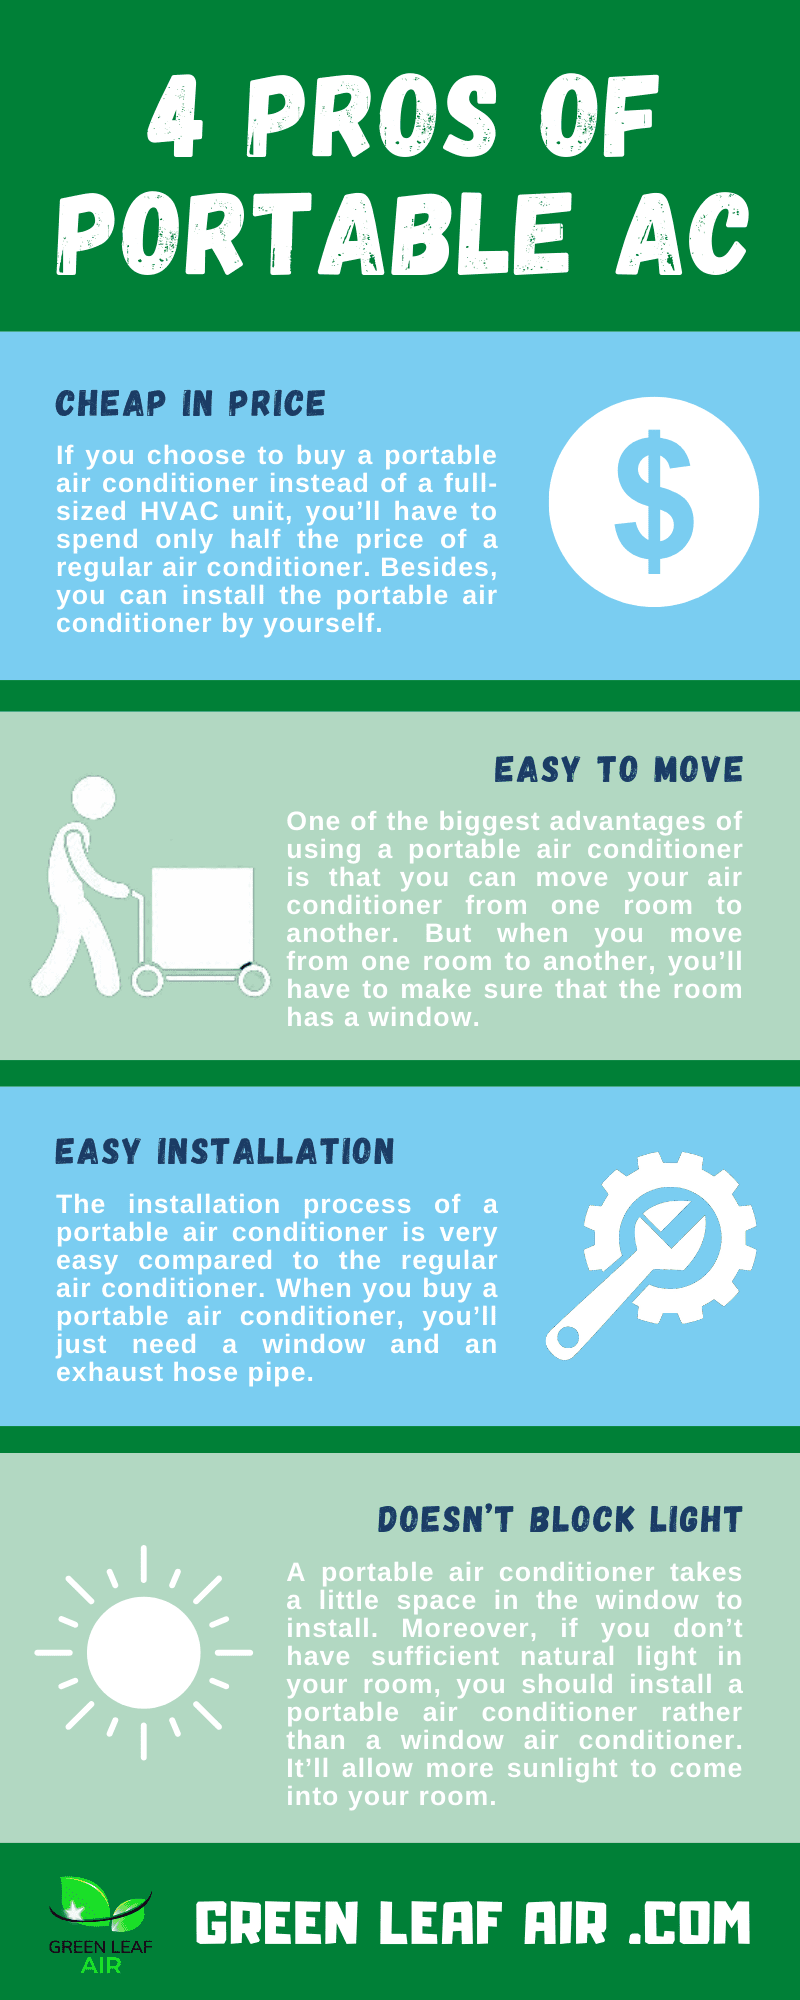 4 Pros of Portable AC